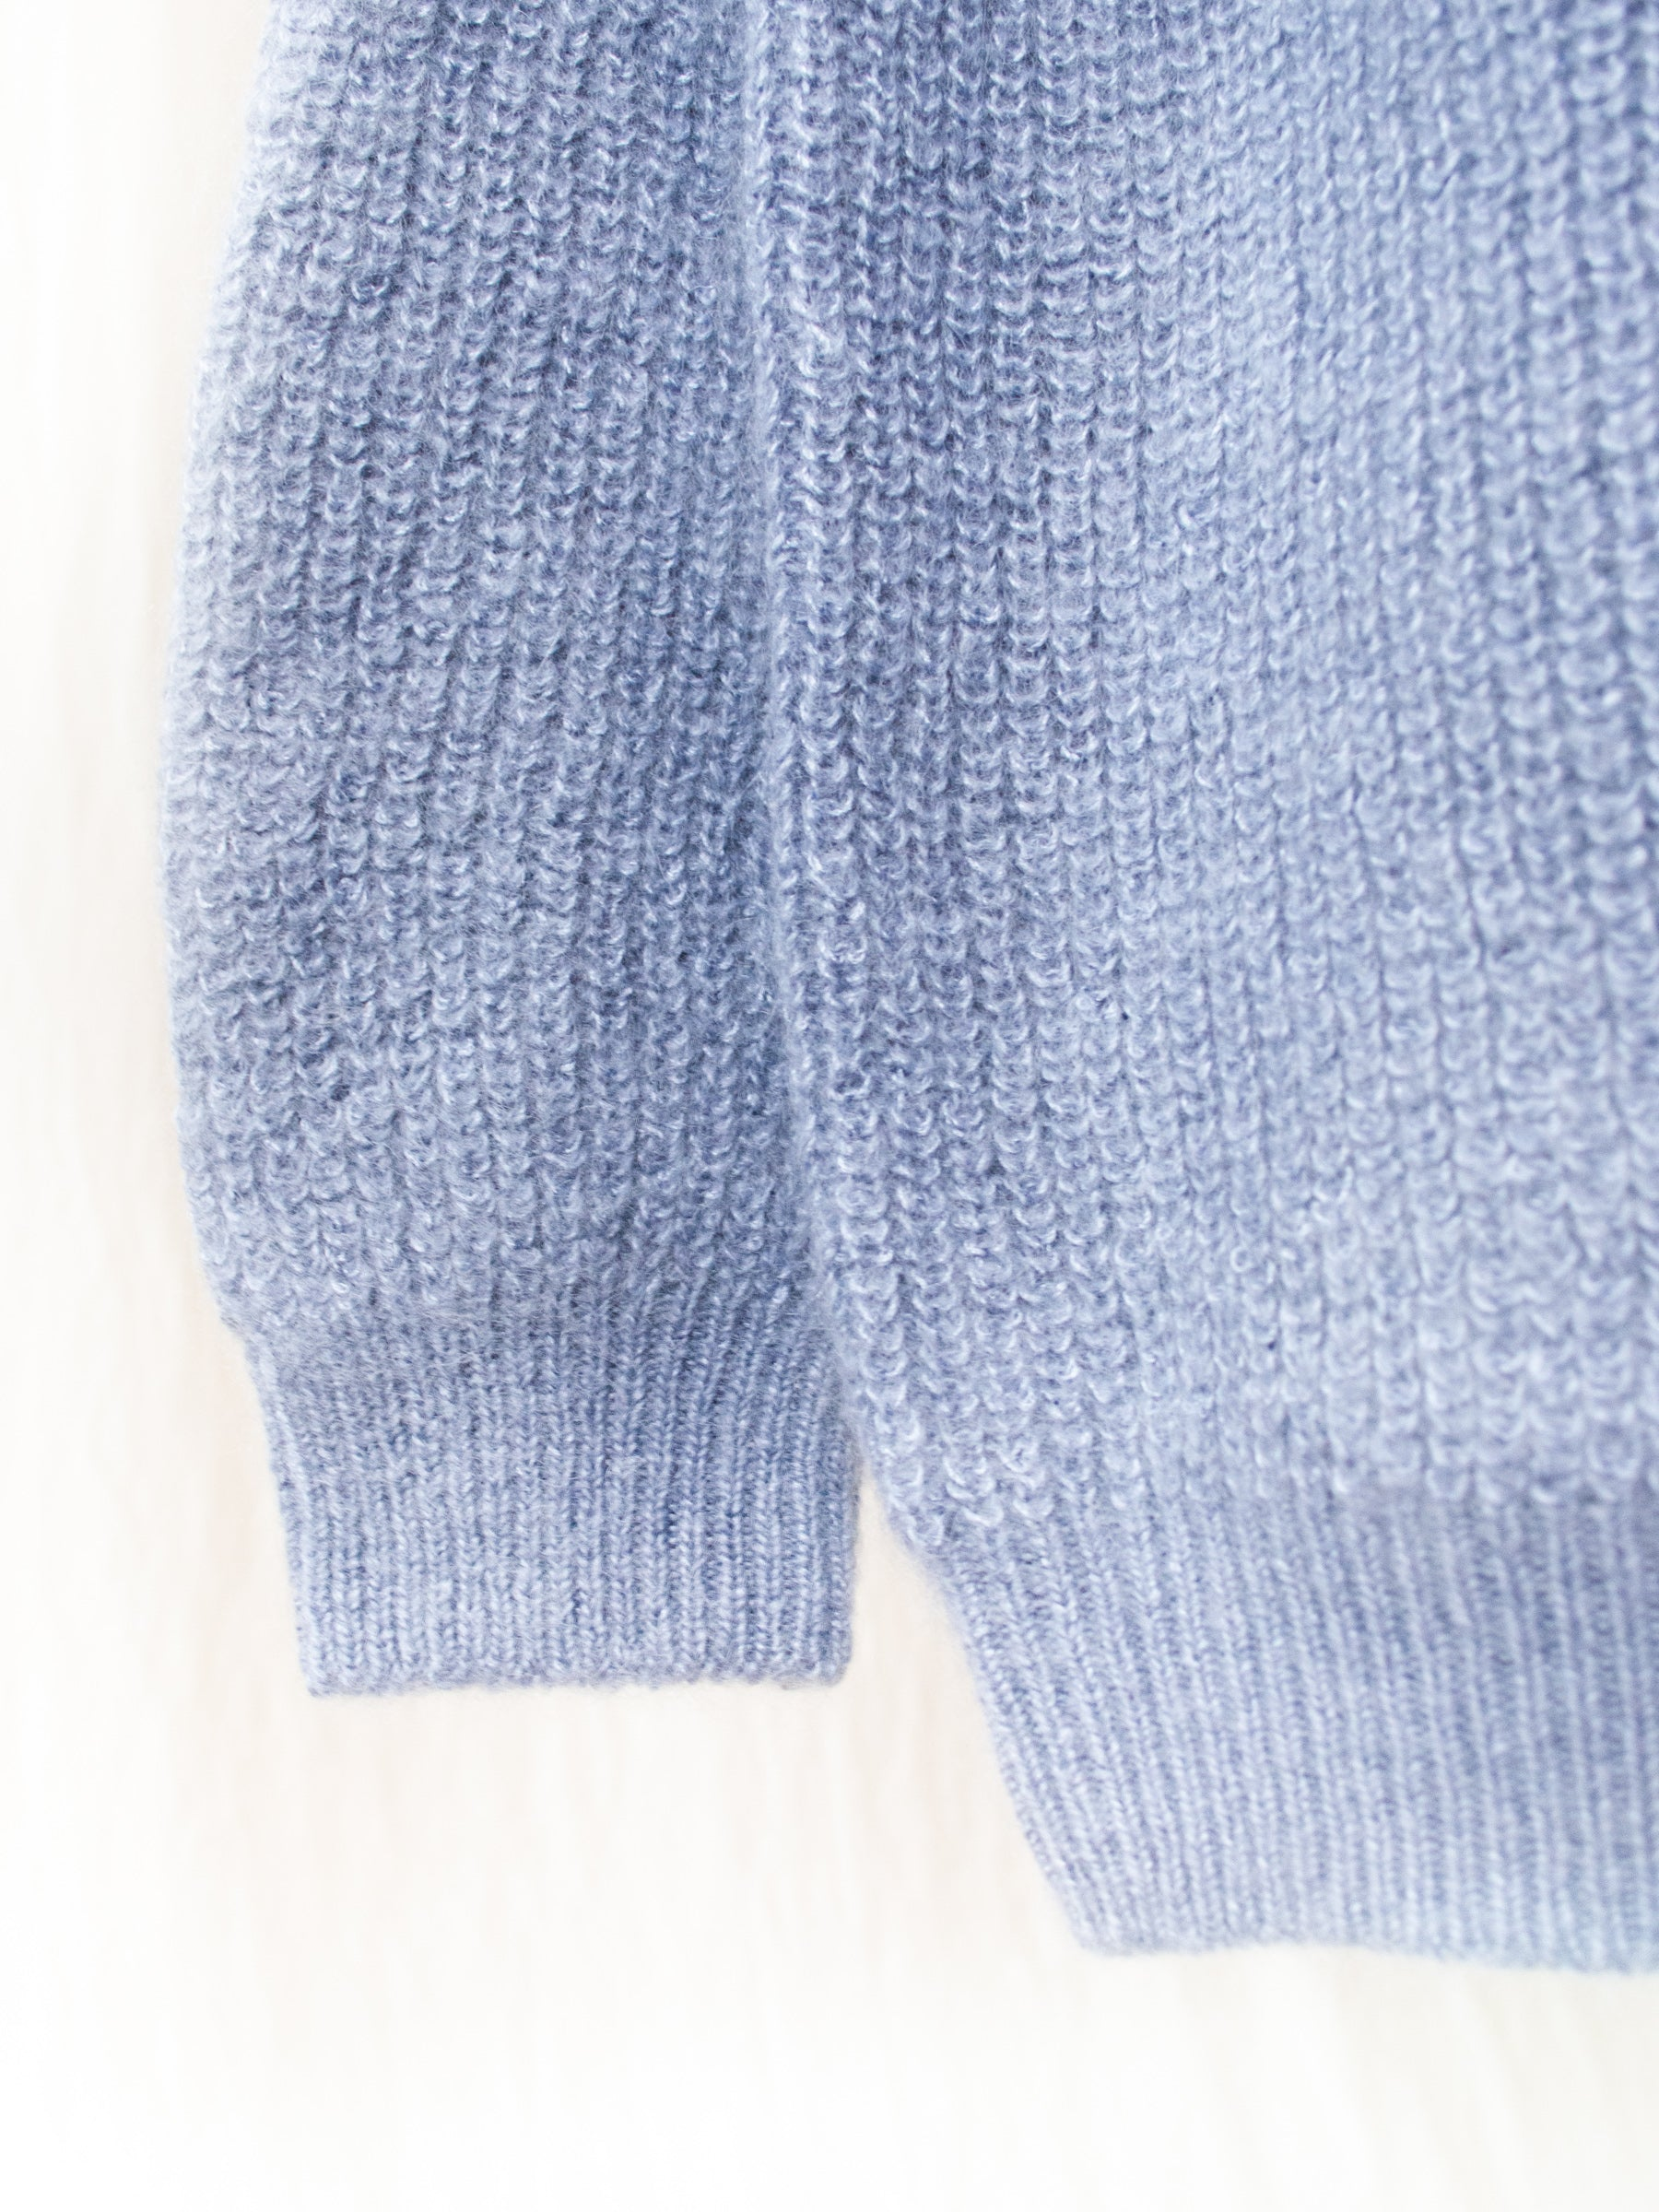 Mohair Silk Rib Stitch Sweater - Pale Blue